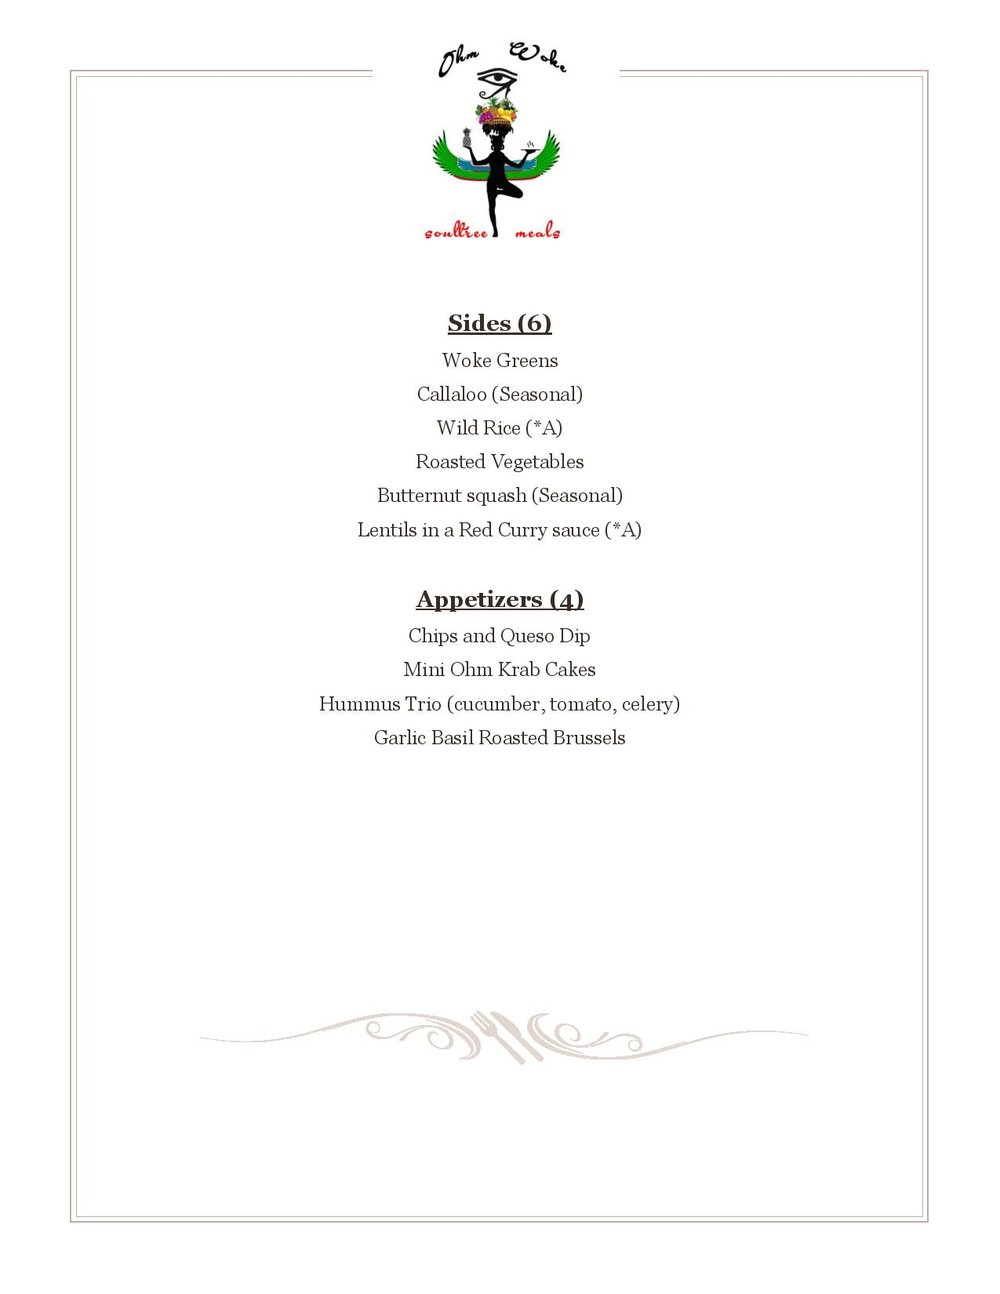 OHM CATERING Menu-page-003.jpg